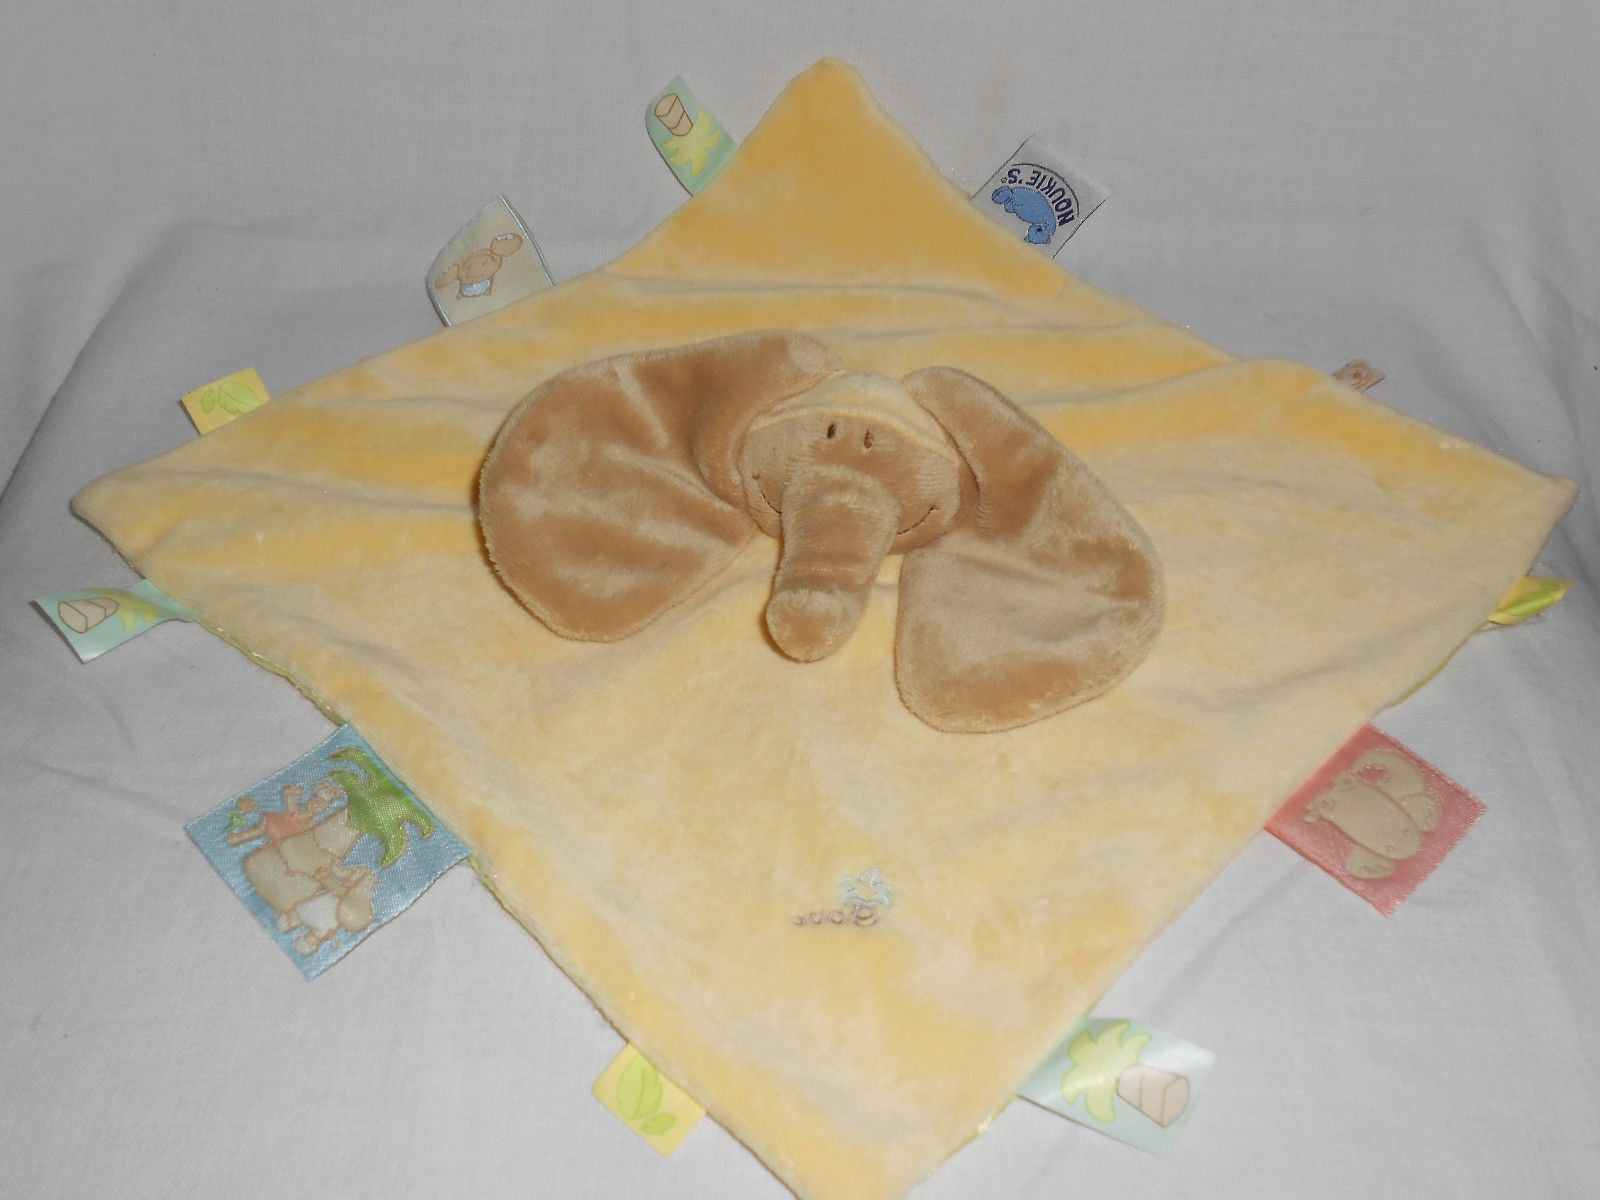 Primary image for Noukies Noukie's Elephant Baby Yellow Palm Tree Security Blanket Lovey Puppet